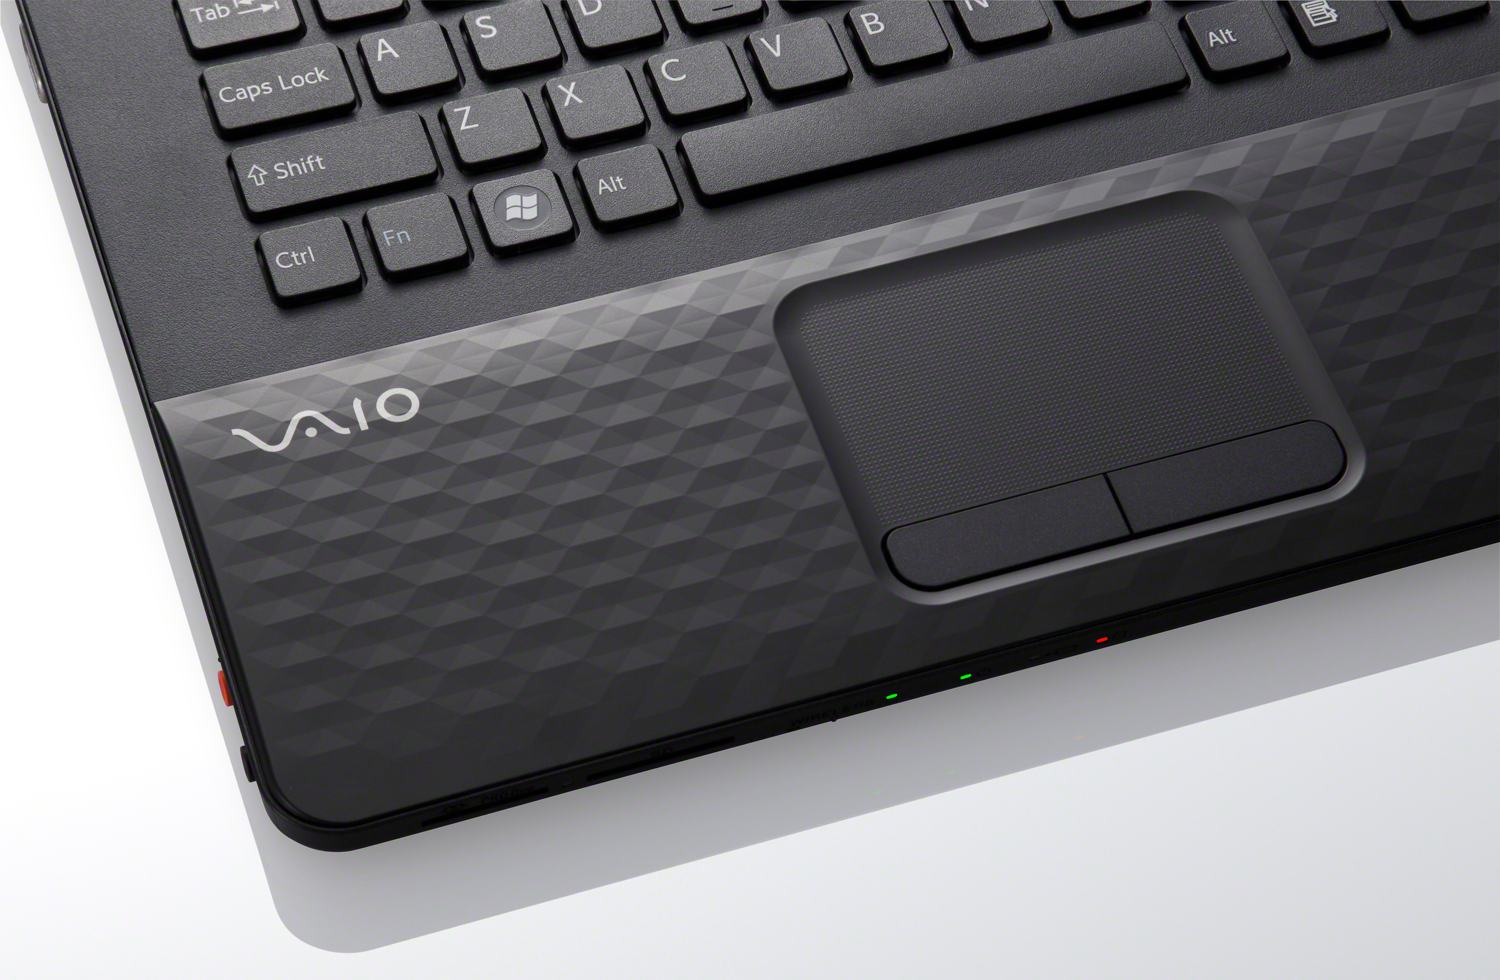 http://images.amazon.com/images/G/01/electronics/sony/sony-11q4-vaio-ej-black-detail-lg.jpg